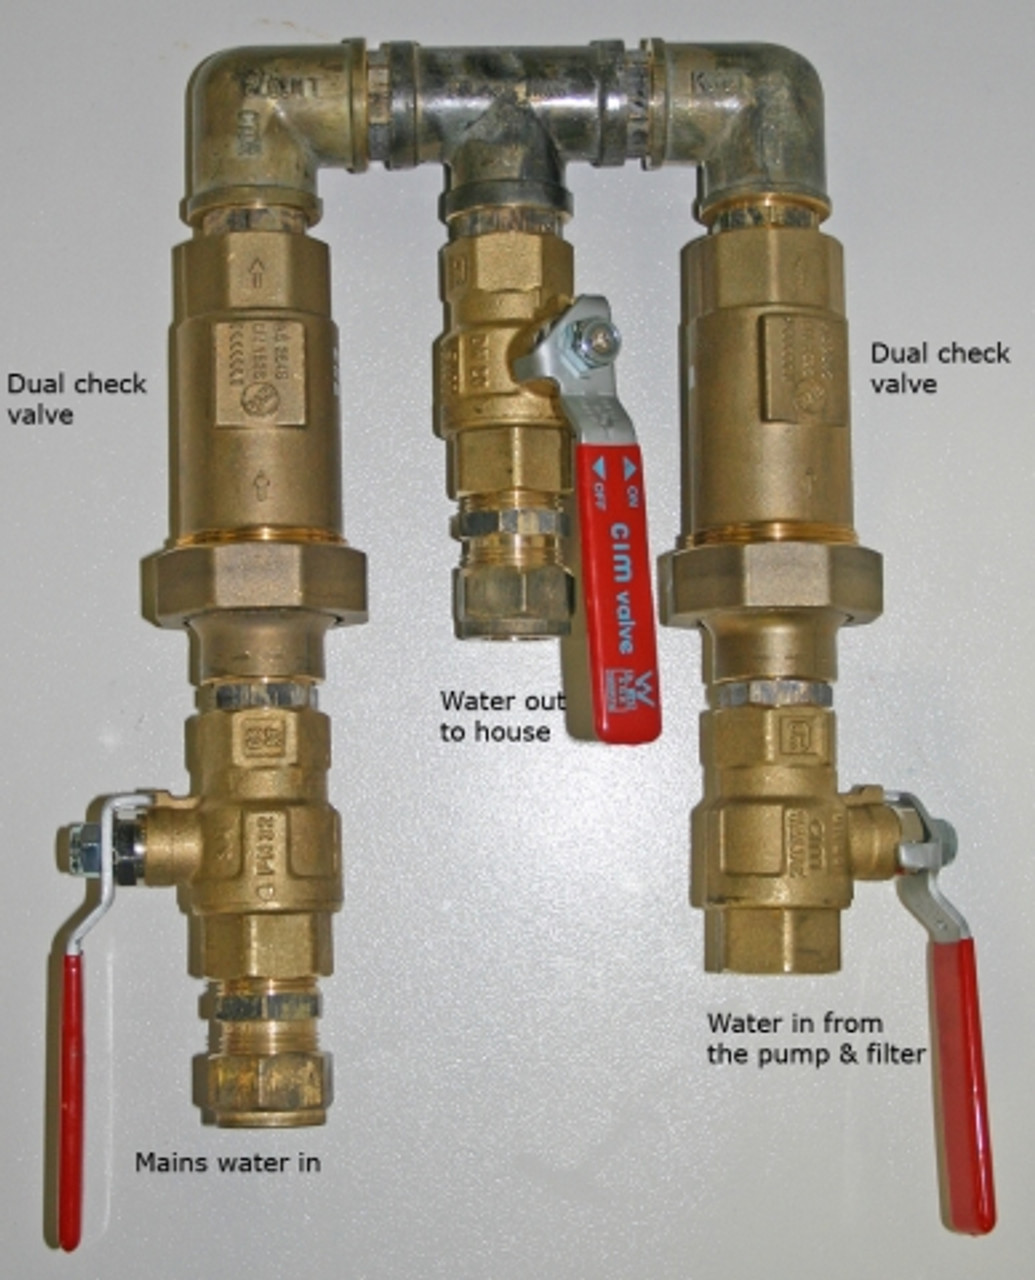 Watermark Approved Components for manual valve switching between town mains water and Grundfos Automatic Pressure Pump